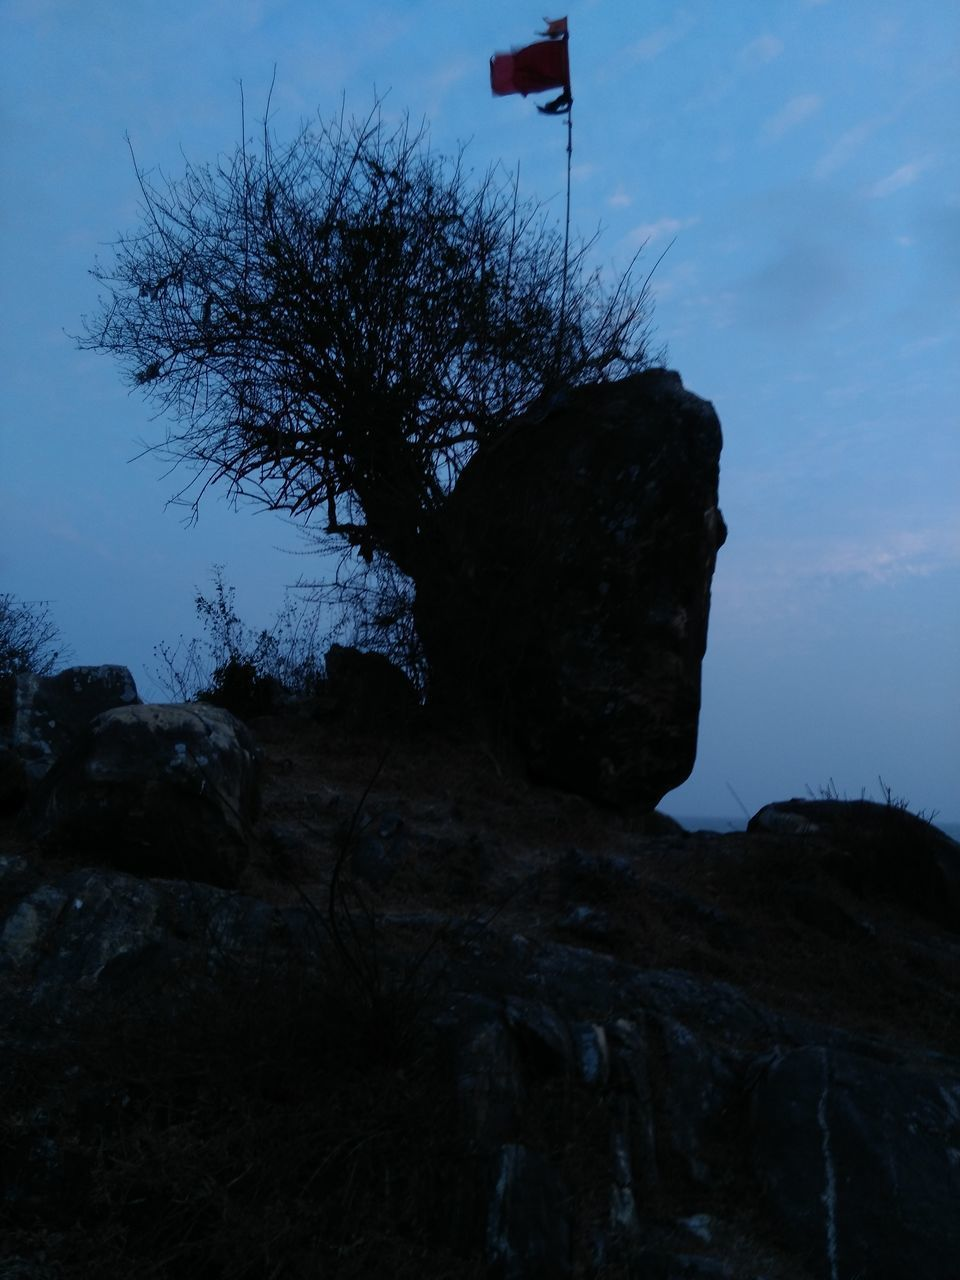 sky, nature, rock - object, flag, outdoors, landscape, no people, beauty in nature, day, tree